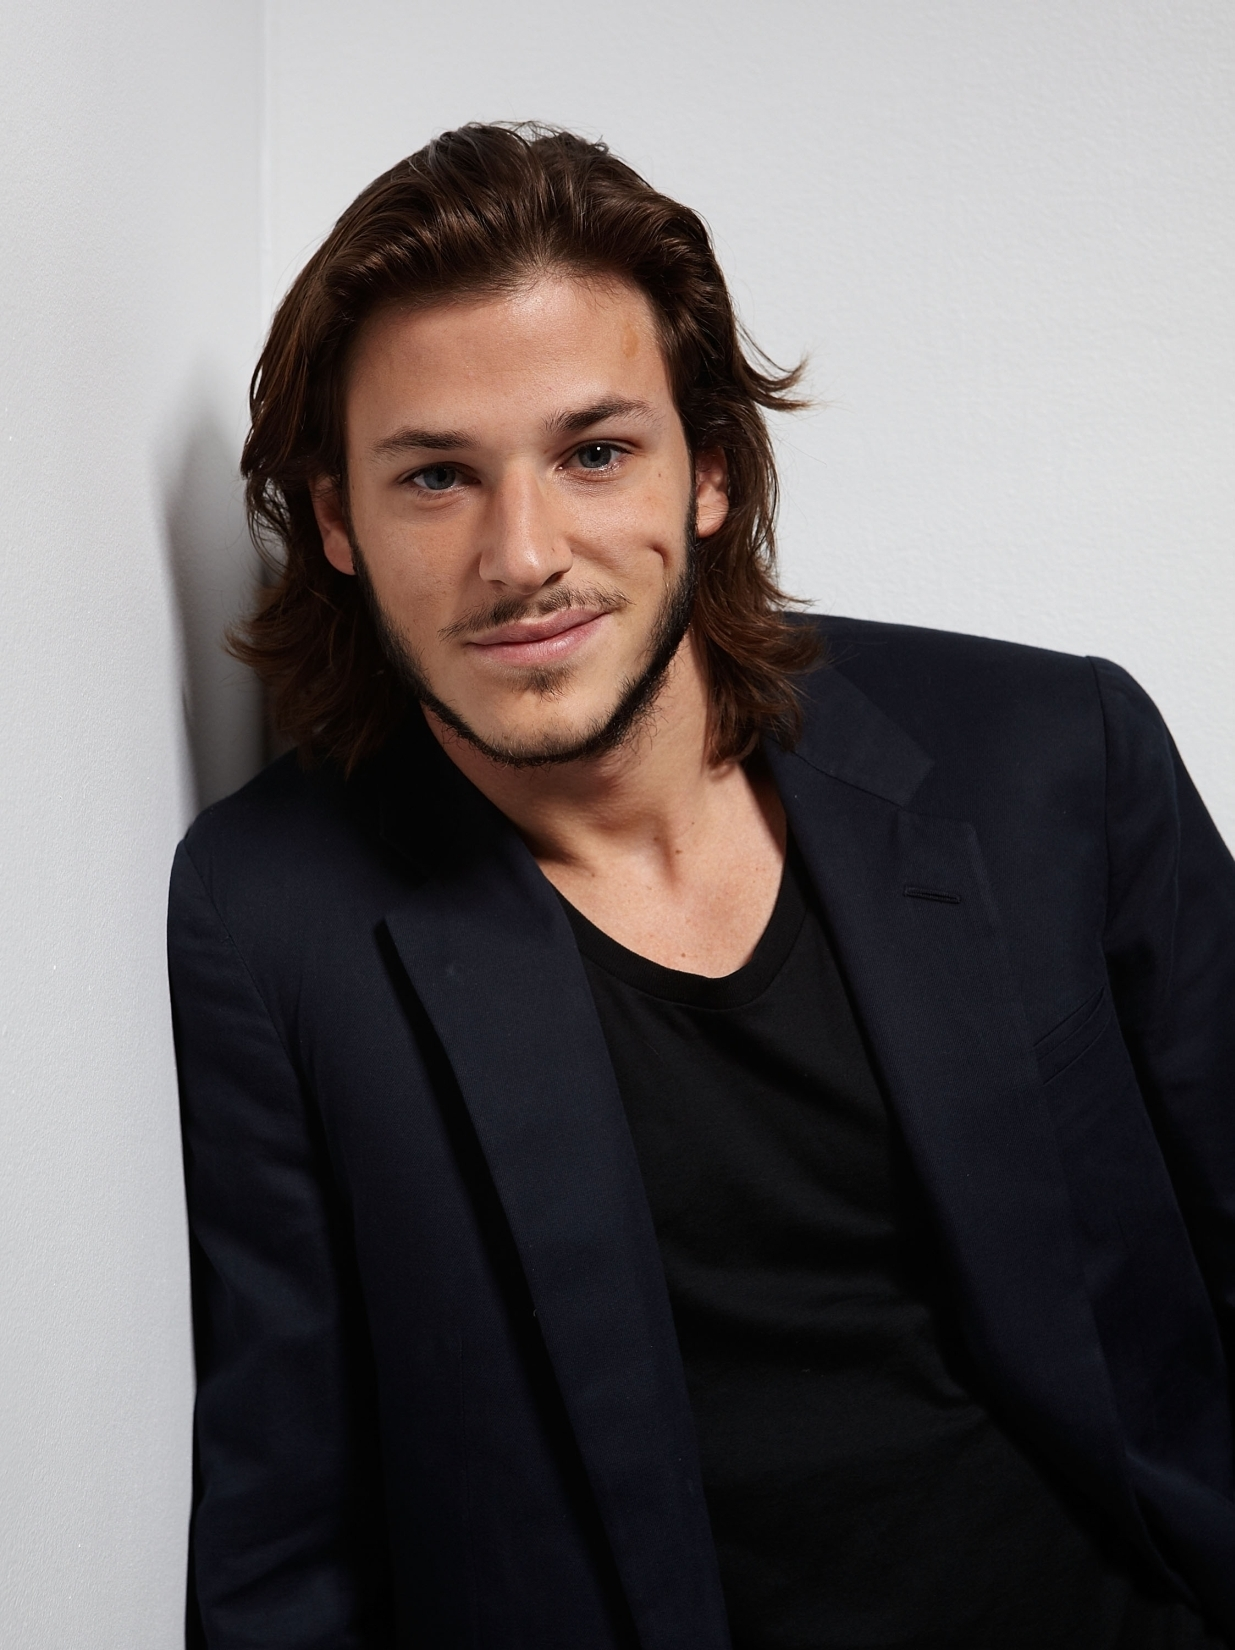 The 33-year old son of father Serge Ulliel and mother Christine Ulliel, 180 cm tall Gaspard Ulliel in 2018 photo